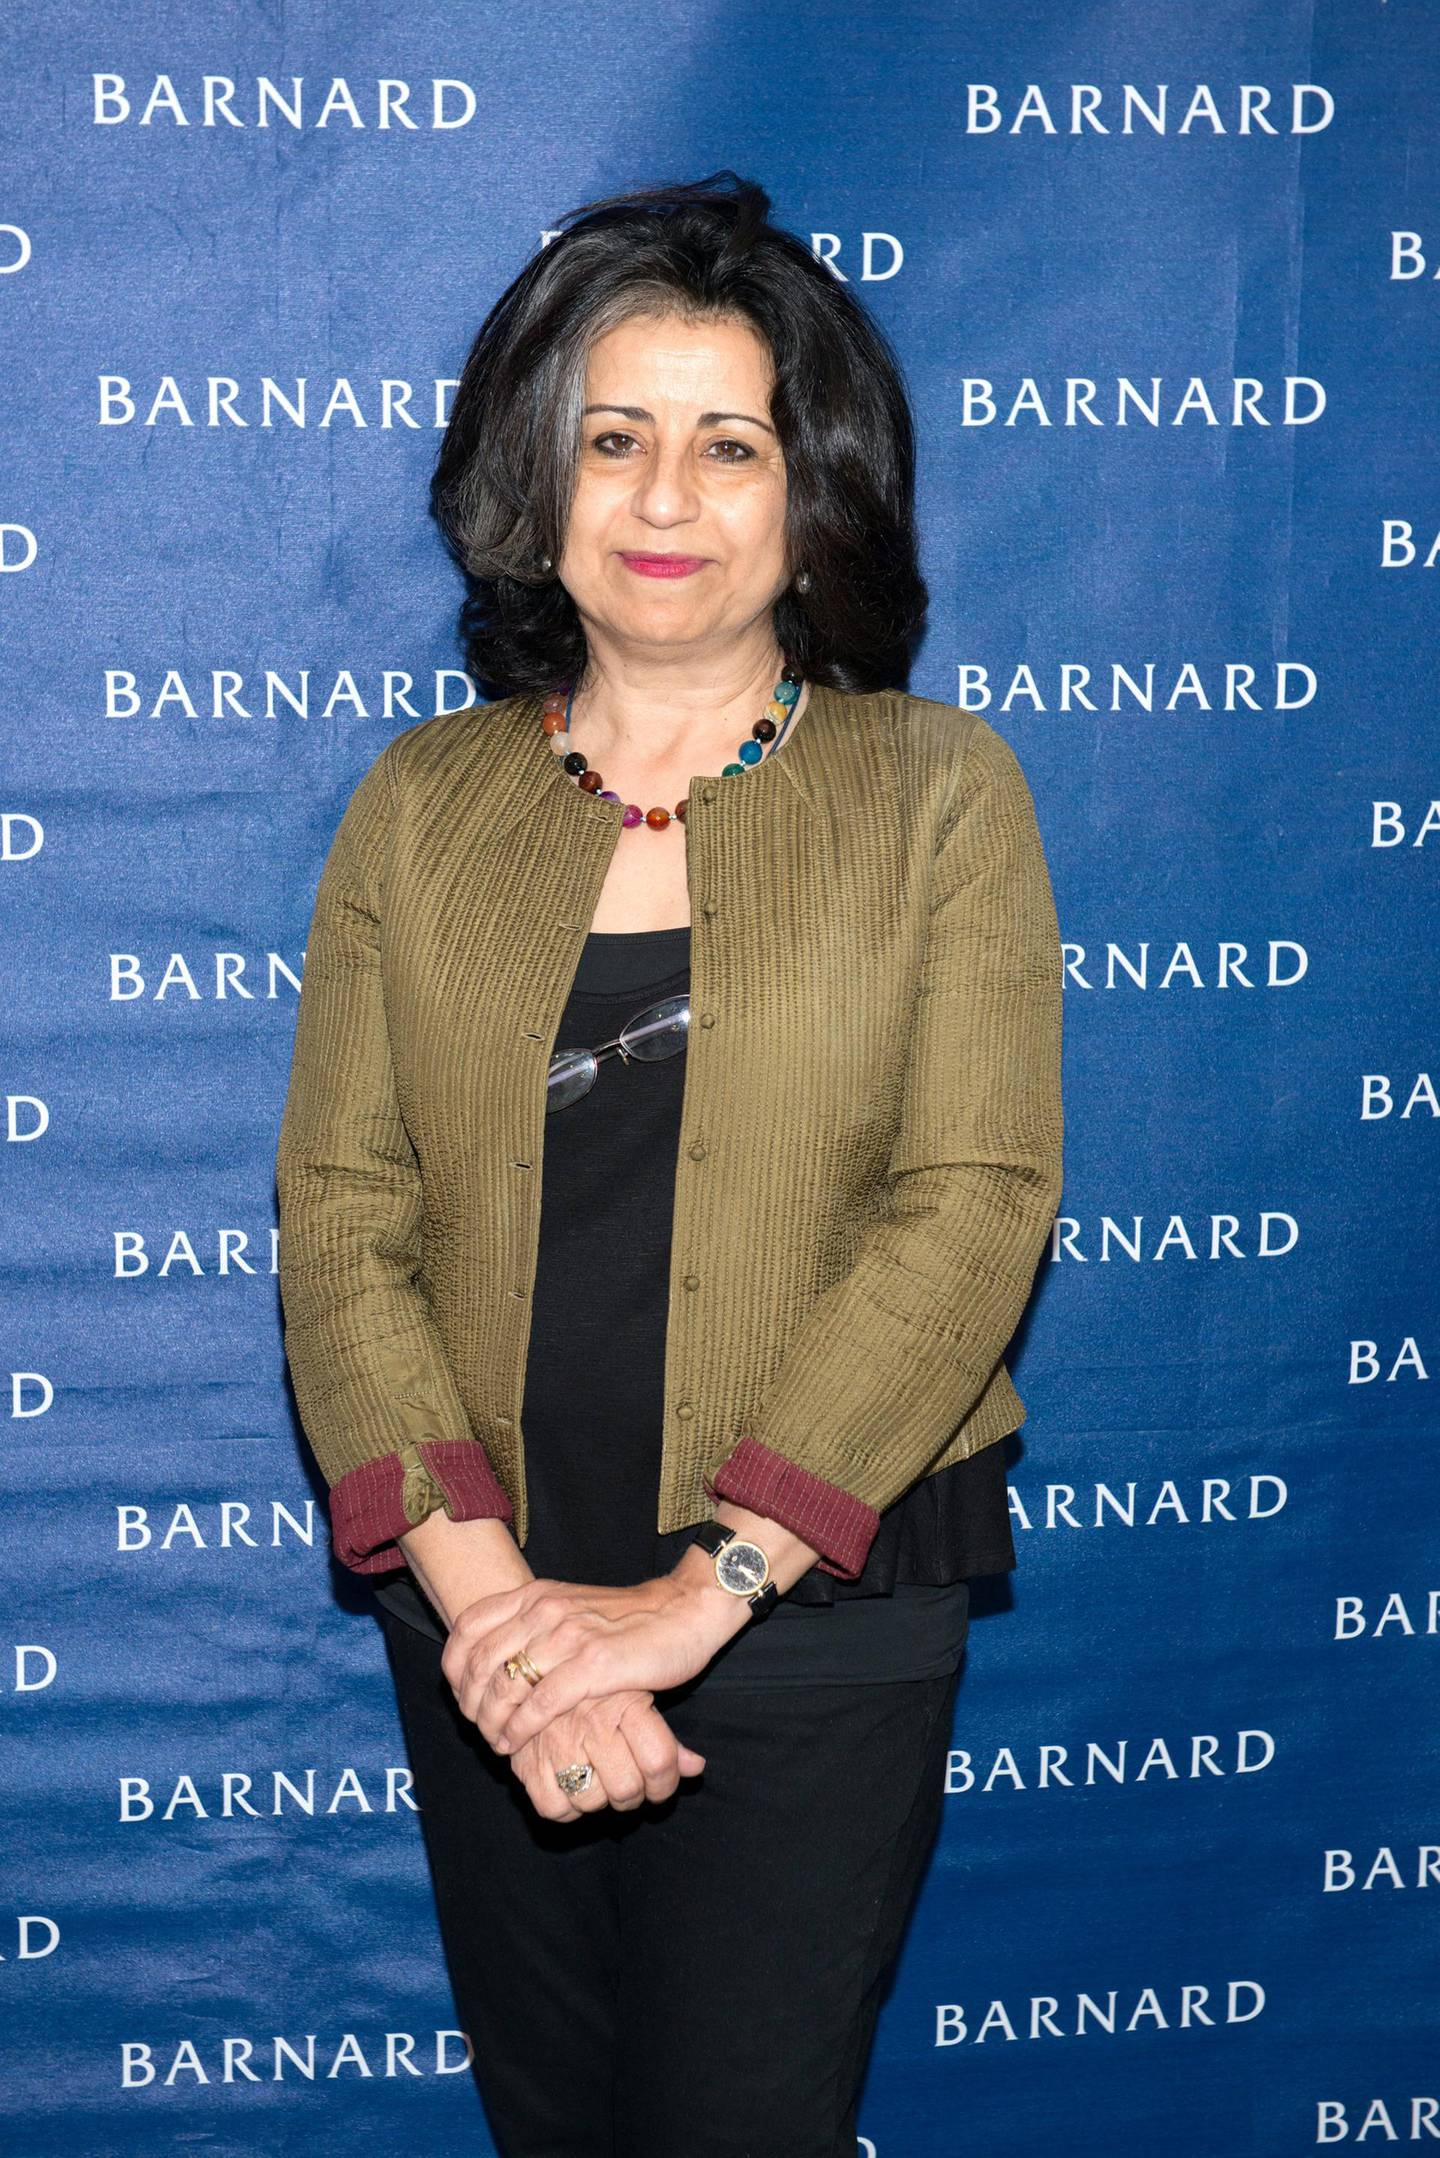 NEW YORK, NY - MARCH 13:  Journalist Ahdaf Soueif attends Barnard College's 7th Annual Global Symposium at Barnard College on March 13, 2015 in New York City.  (Photo by Noam Galai/WireImage)